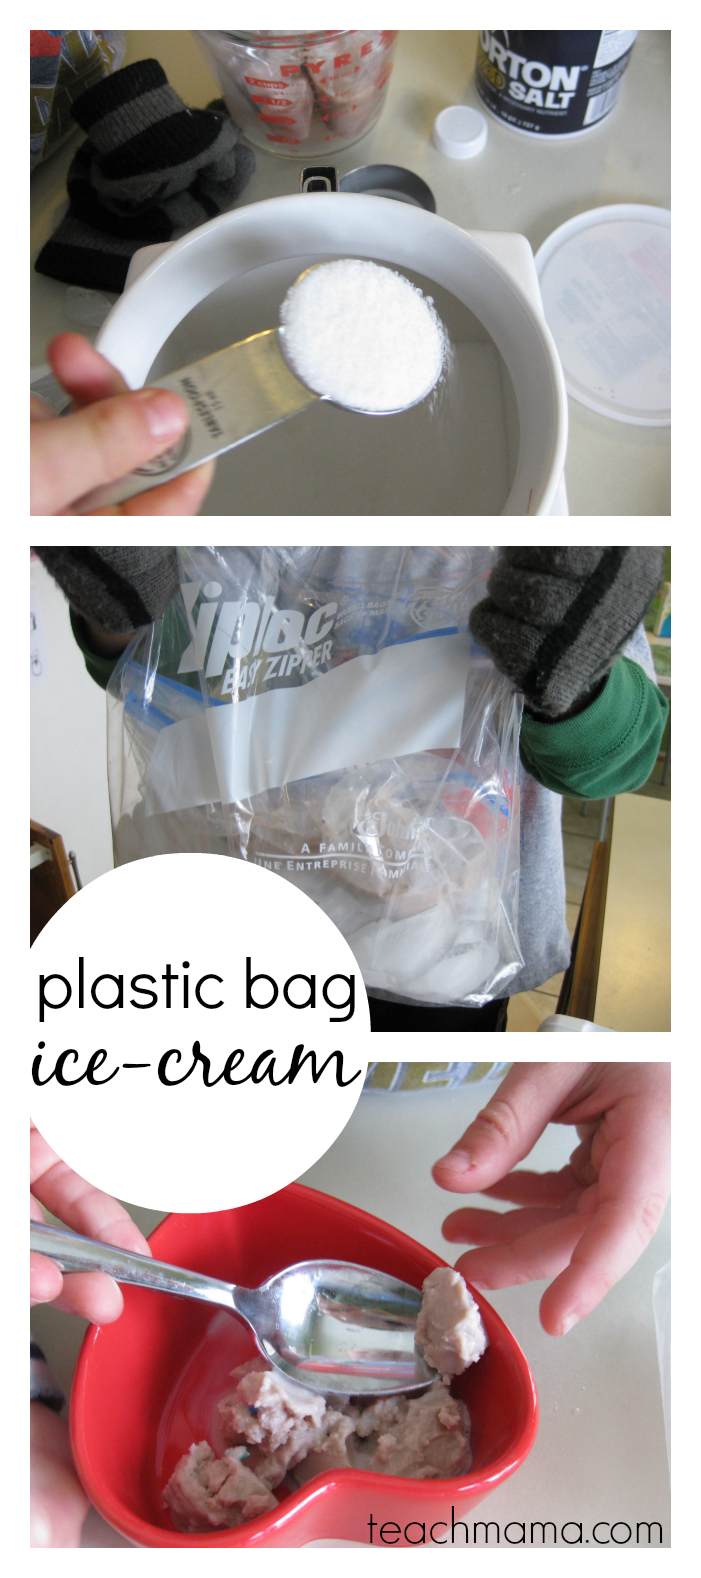 easy, homemade plastic bag icecream | teachmama.com with free printable kid-friendly recipe #weteach